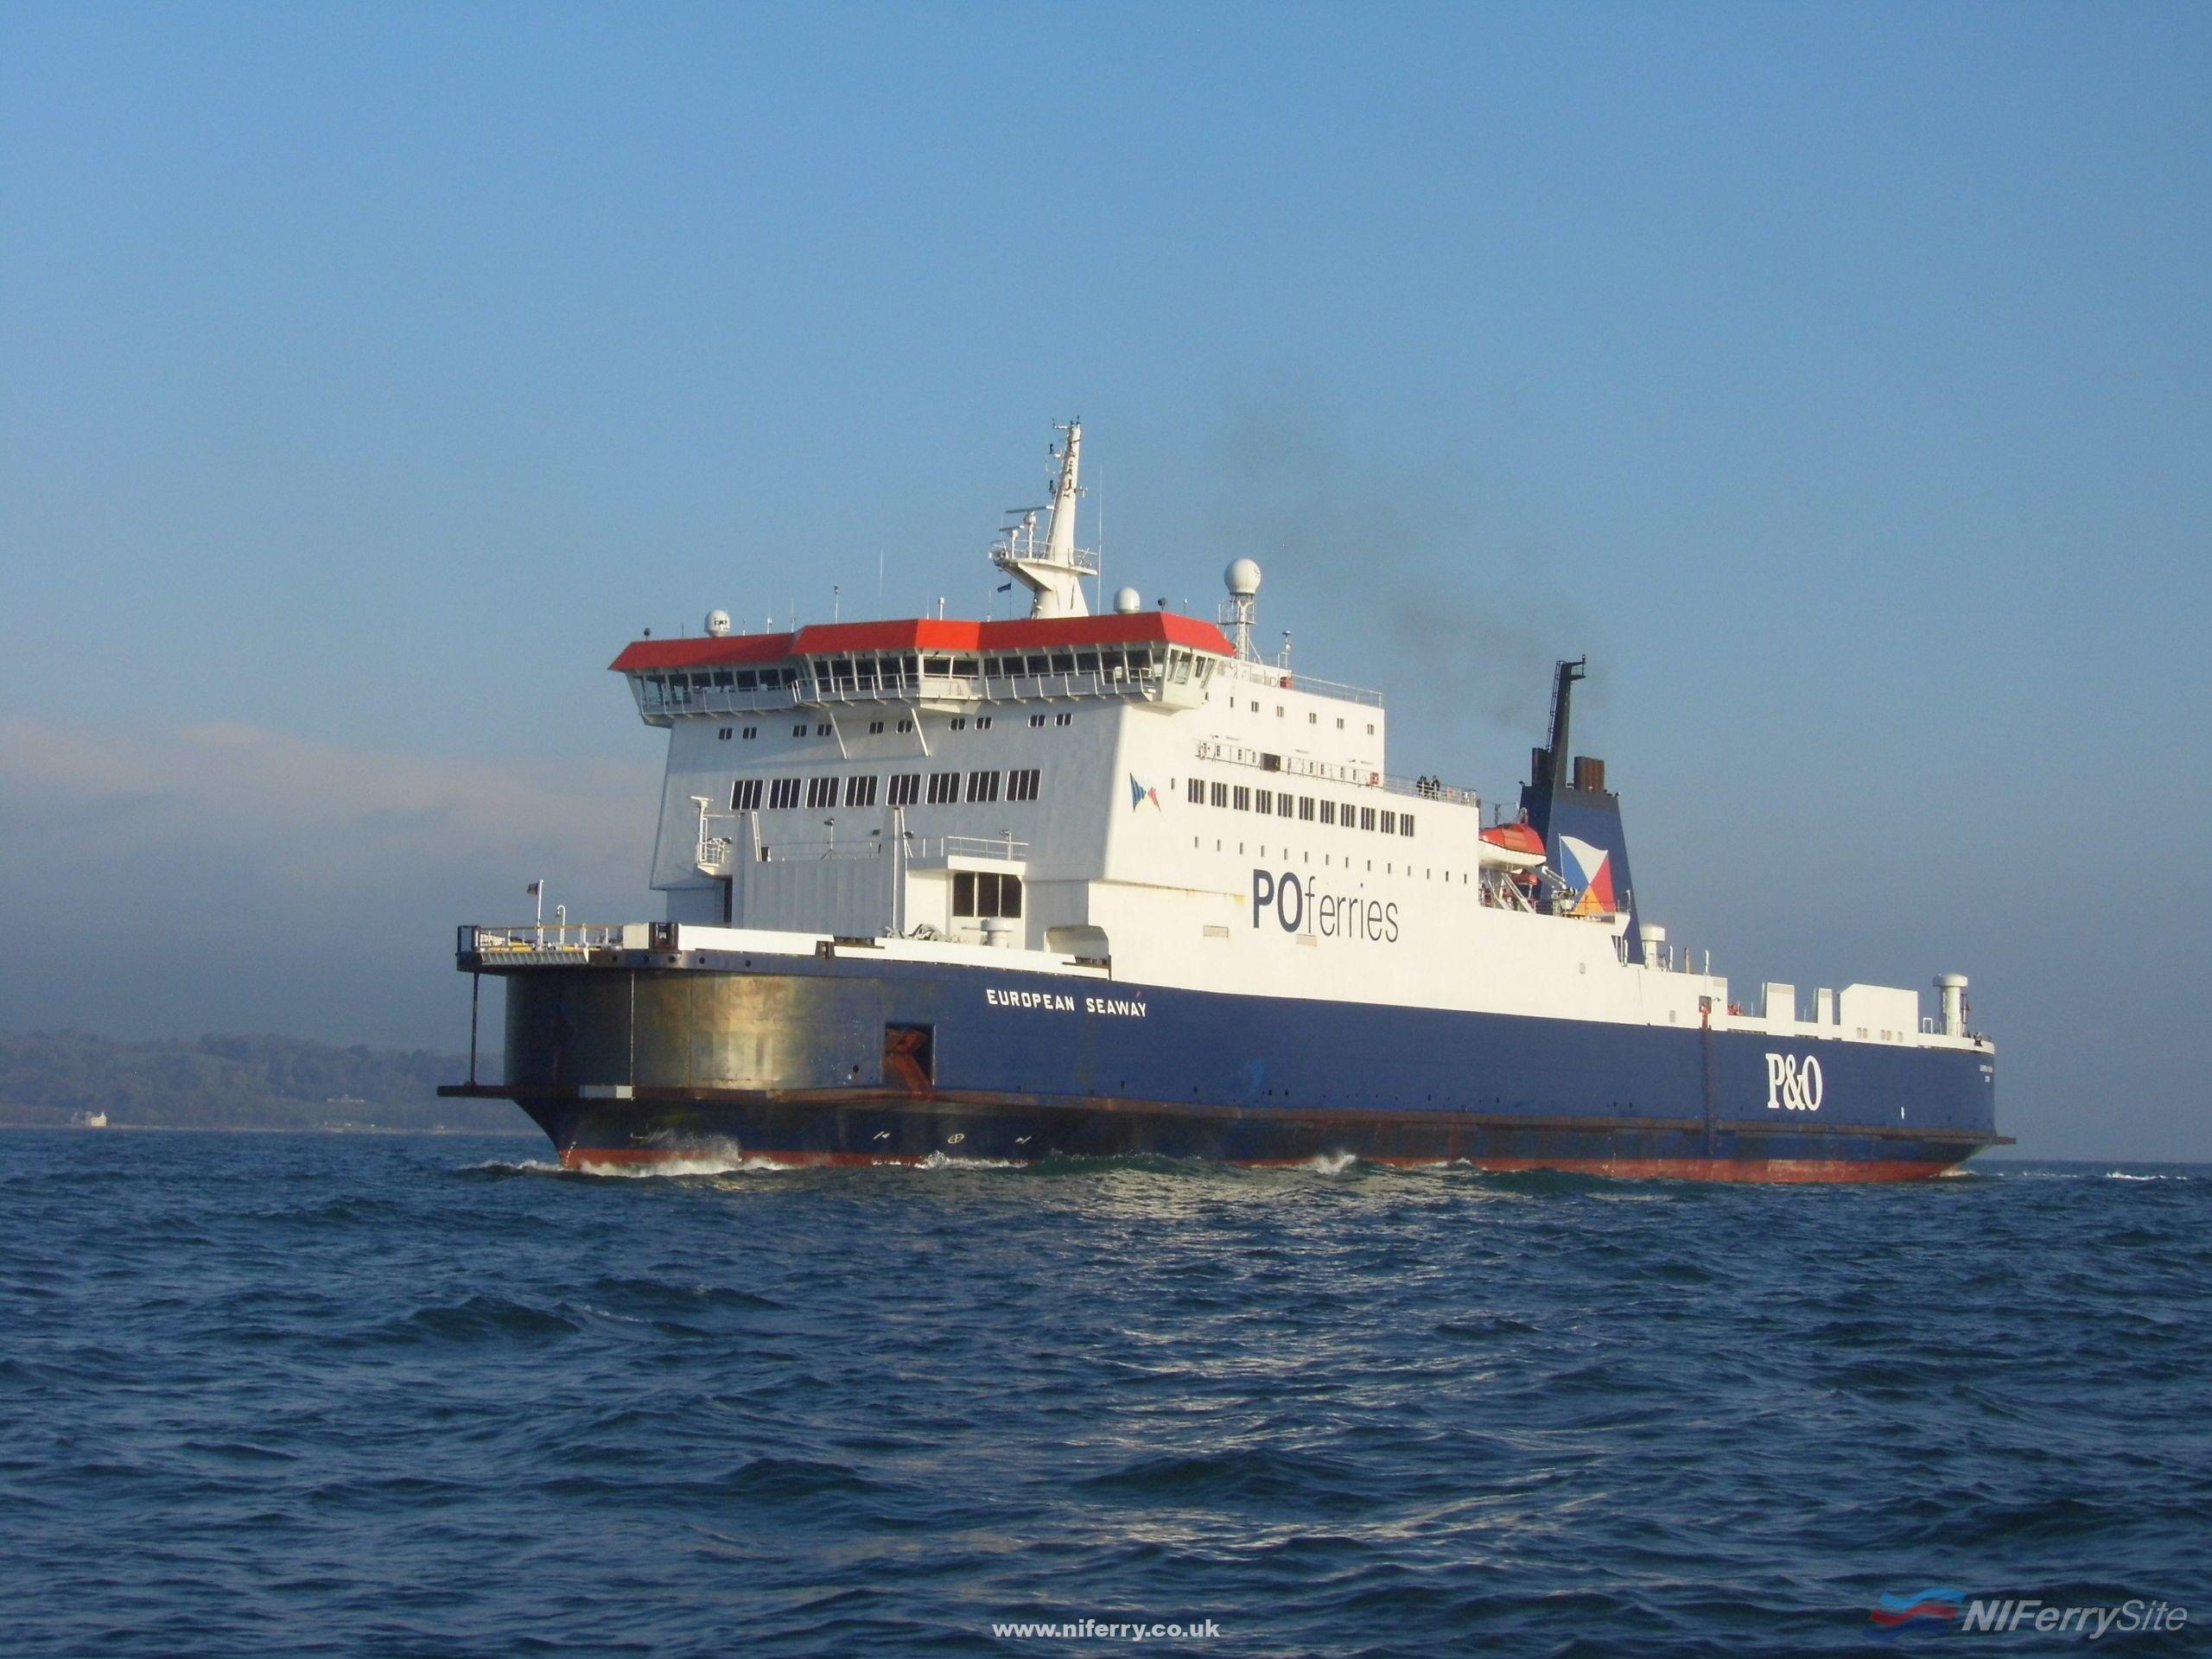 EUROPEAN SEAWAY on her first day at Larne. Copyright © Trevor Kidd